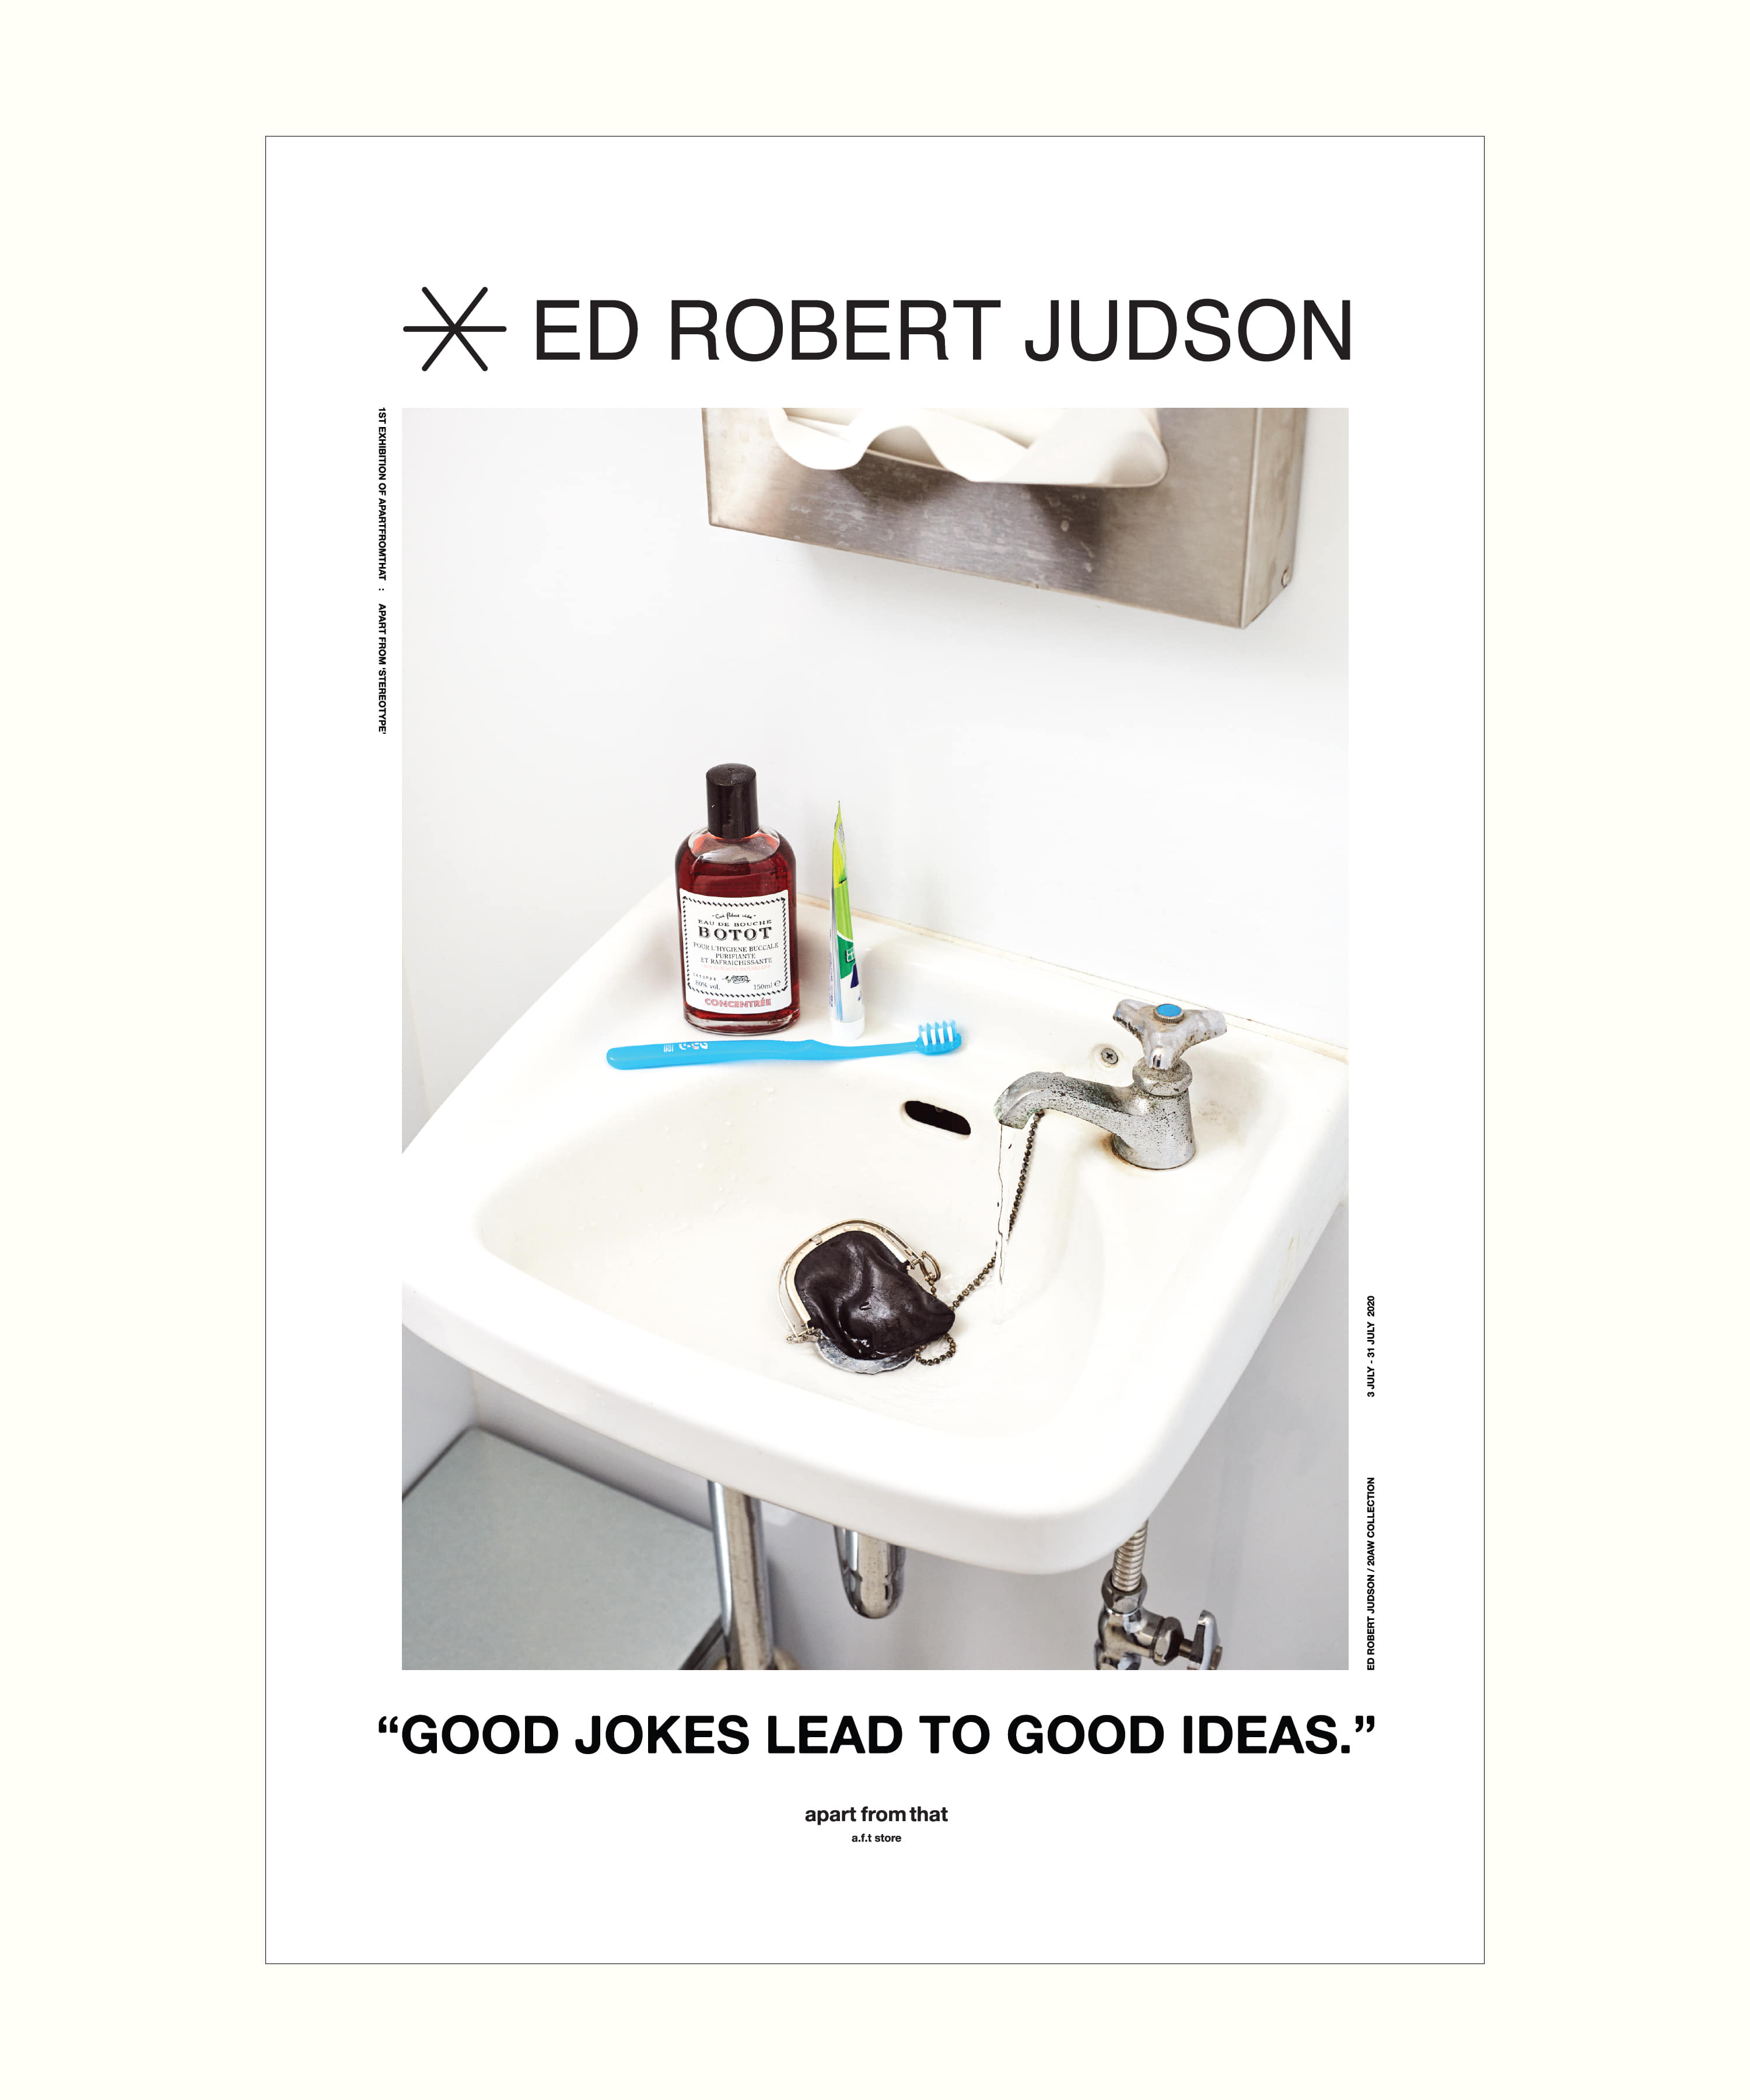 "ED ROBERT JUDSON : APART FROM ""STEREOTYPE"" POSTER.02"